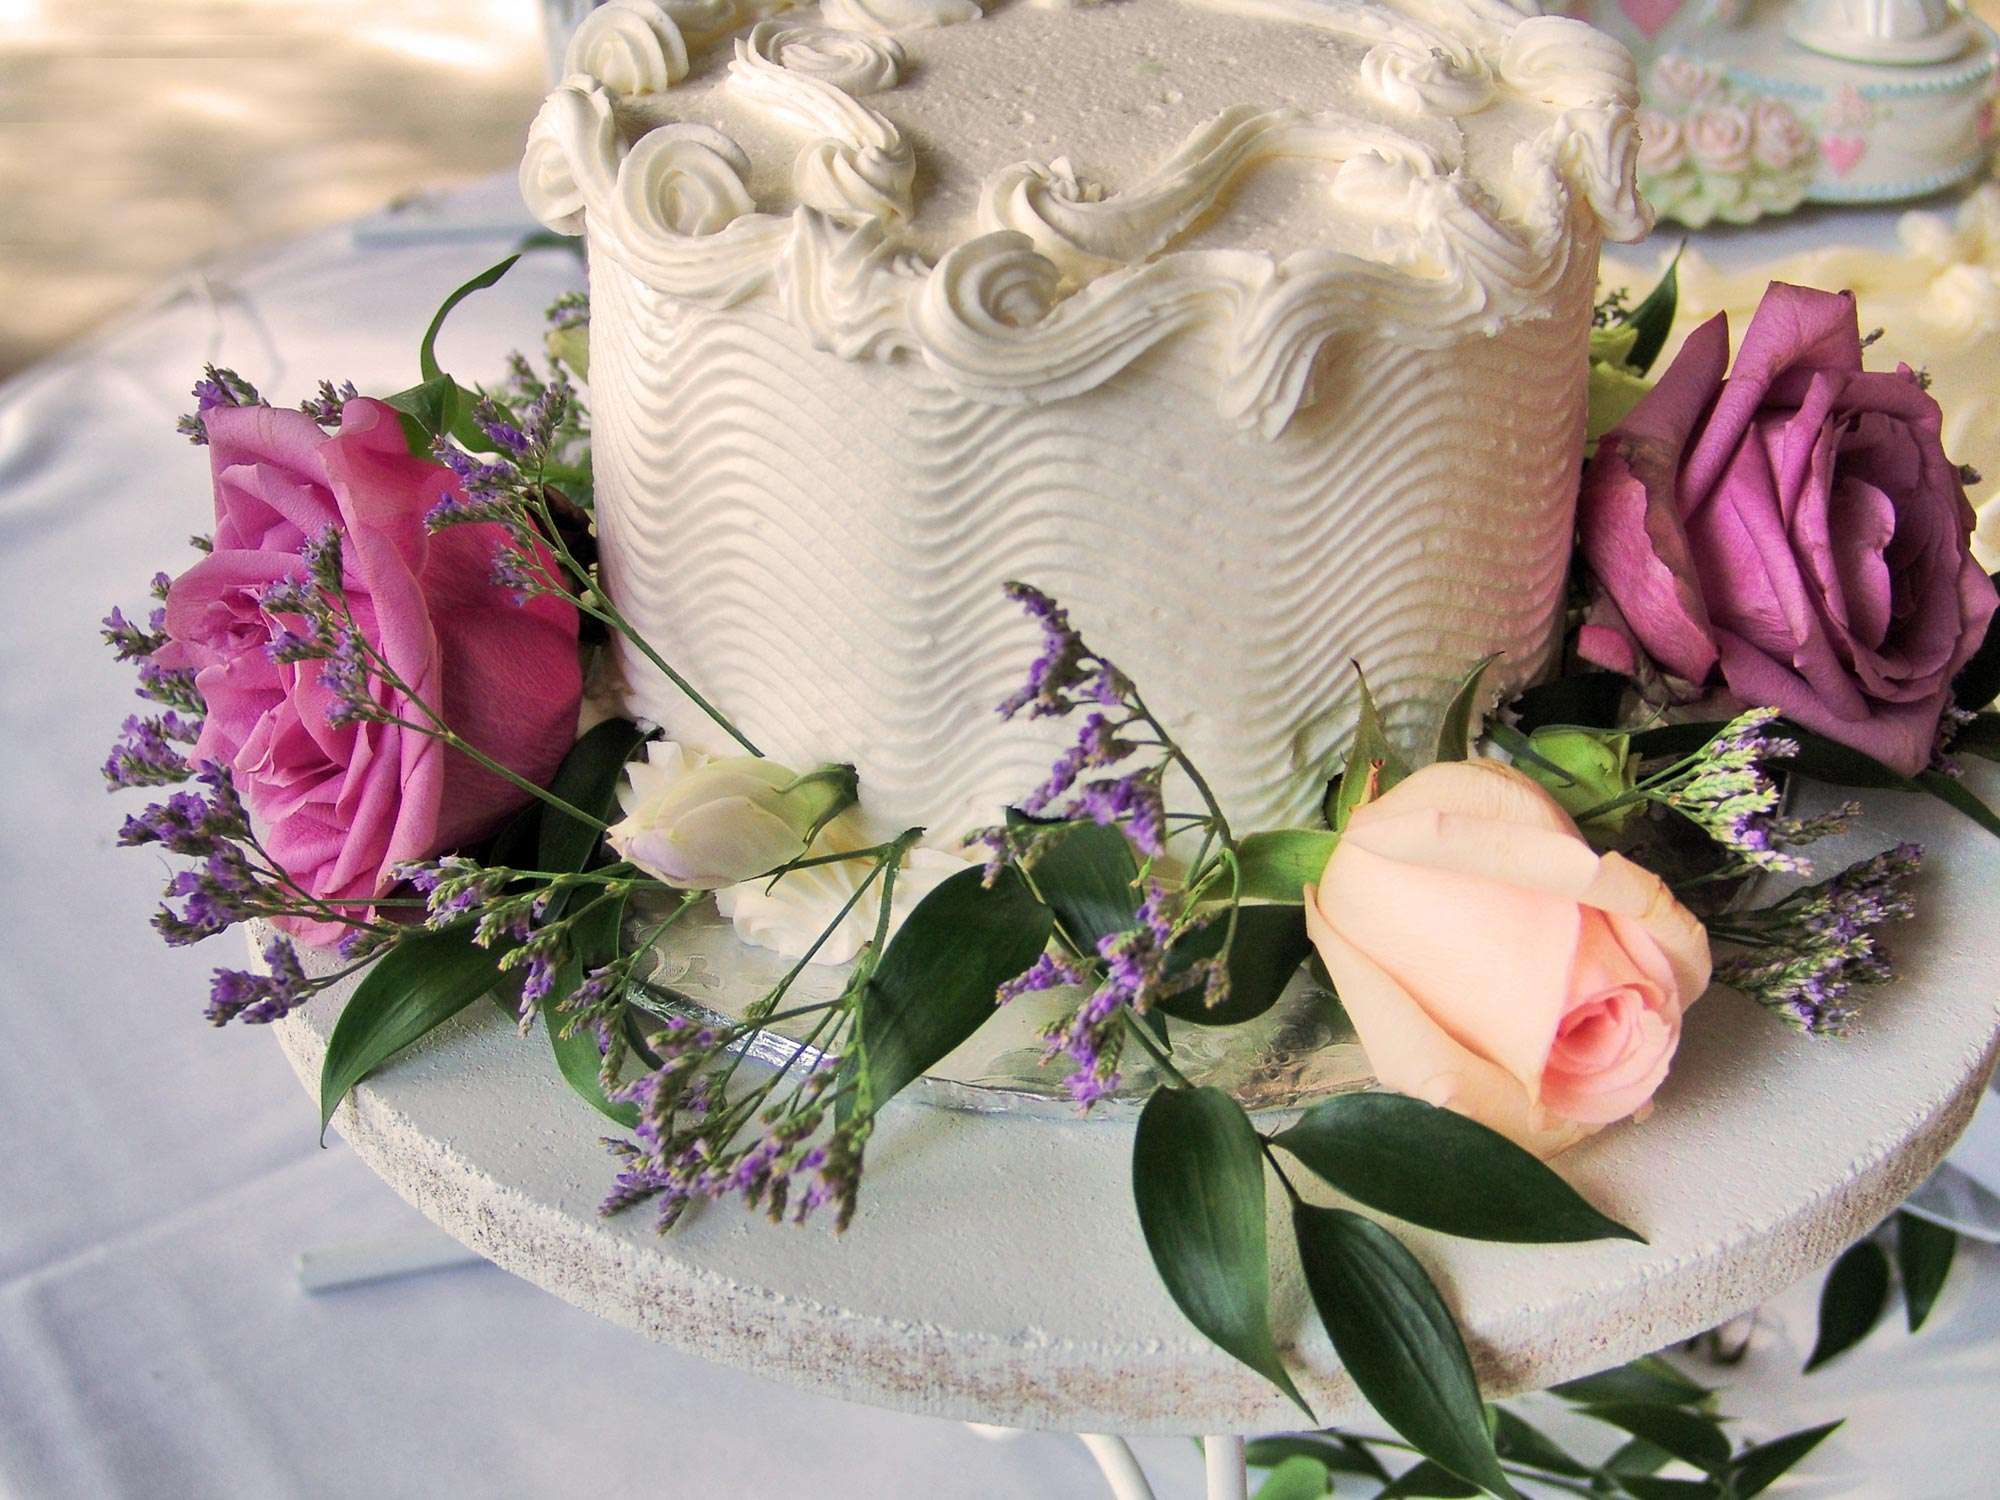 Freeze Your Wedding Cake